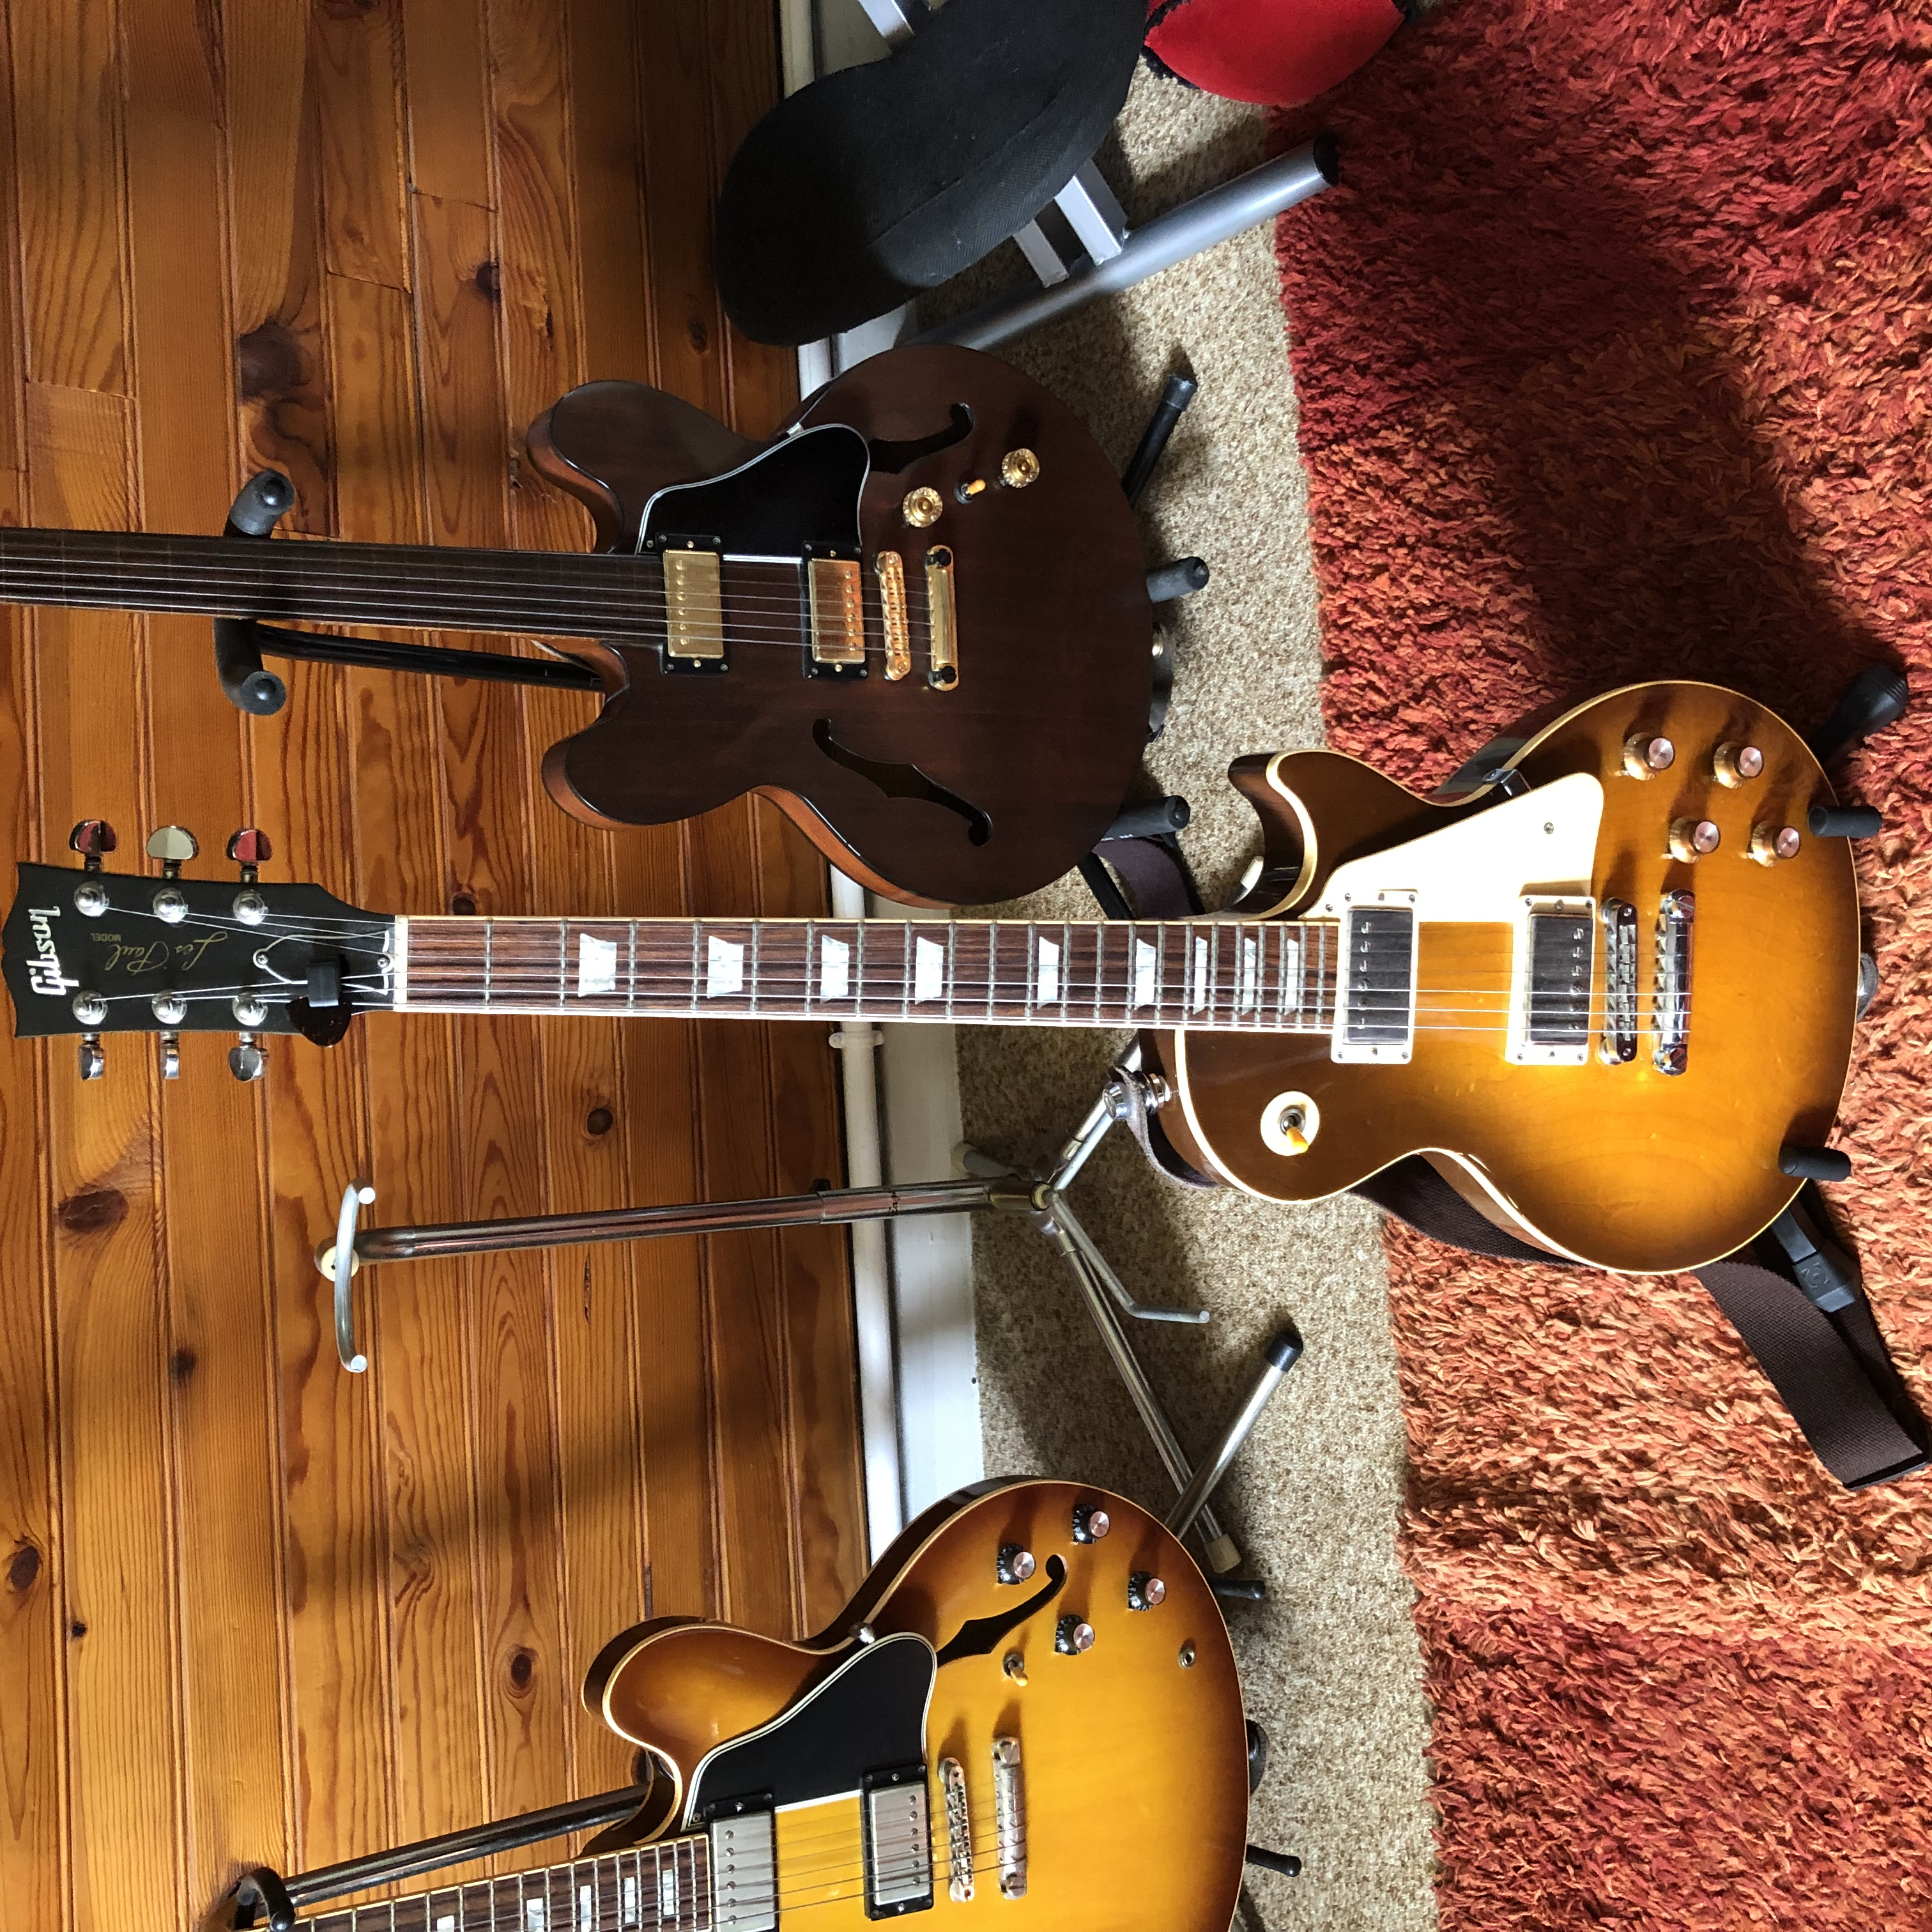 vends gibson les paul standard annonce guitare gibson. Black Bedroom Furniture Sets. Home Design Ideas